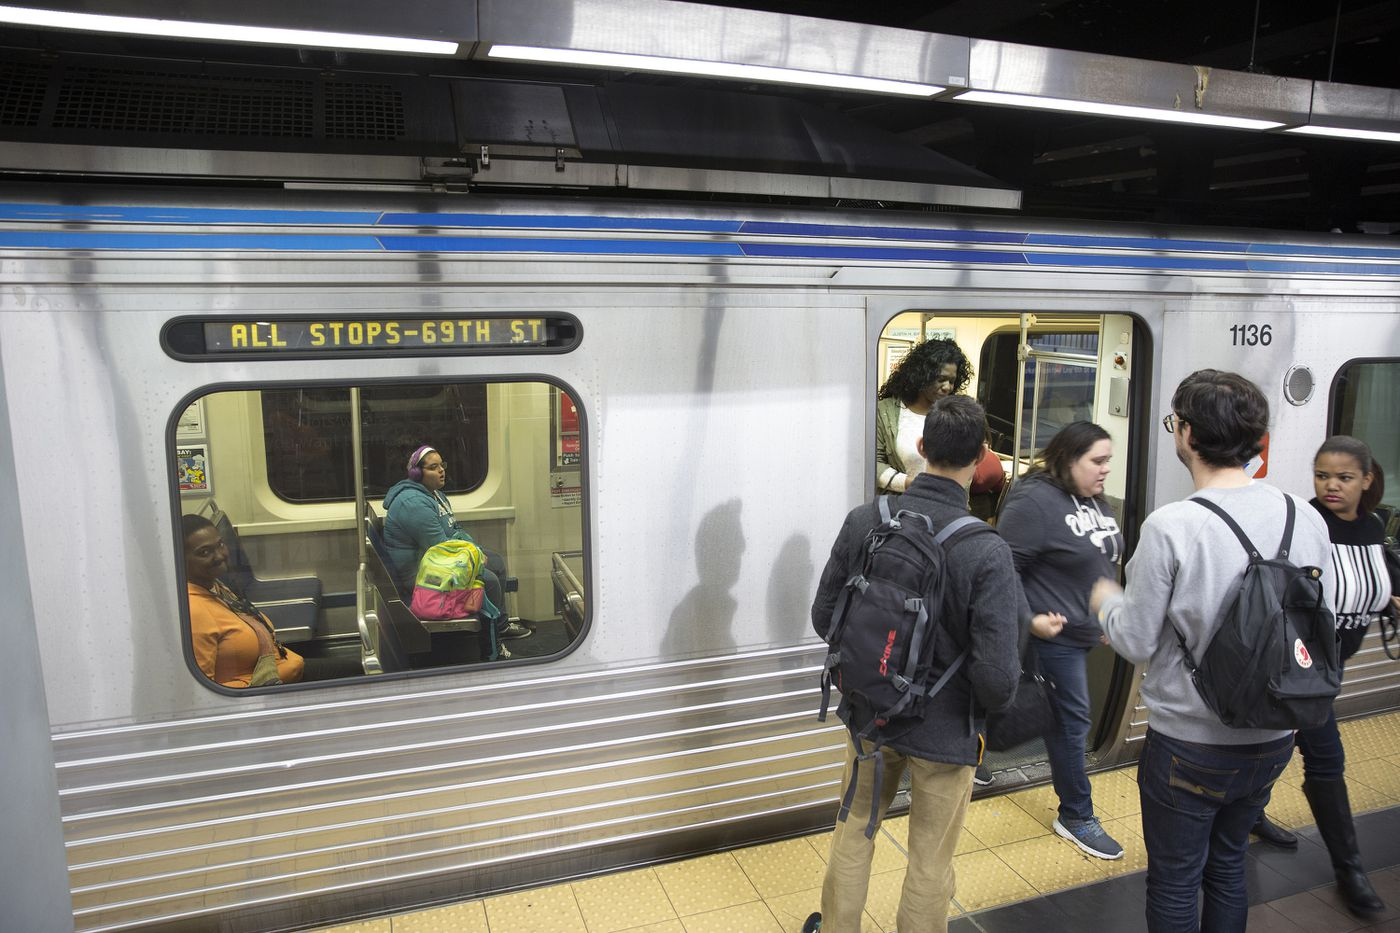 Can SEPTA really get a celebrity to voice announcements?